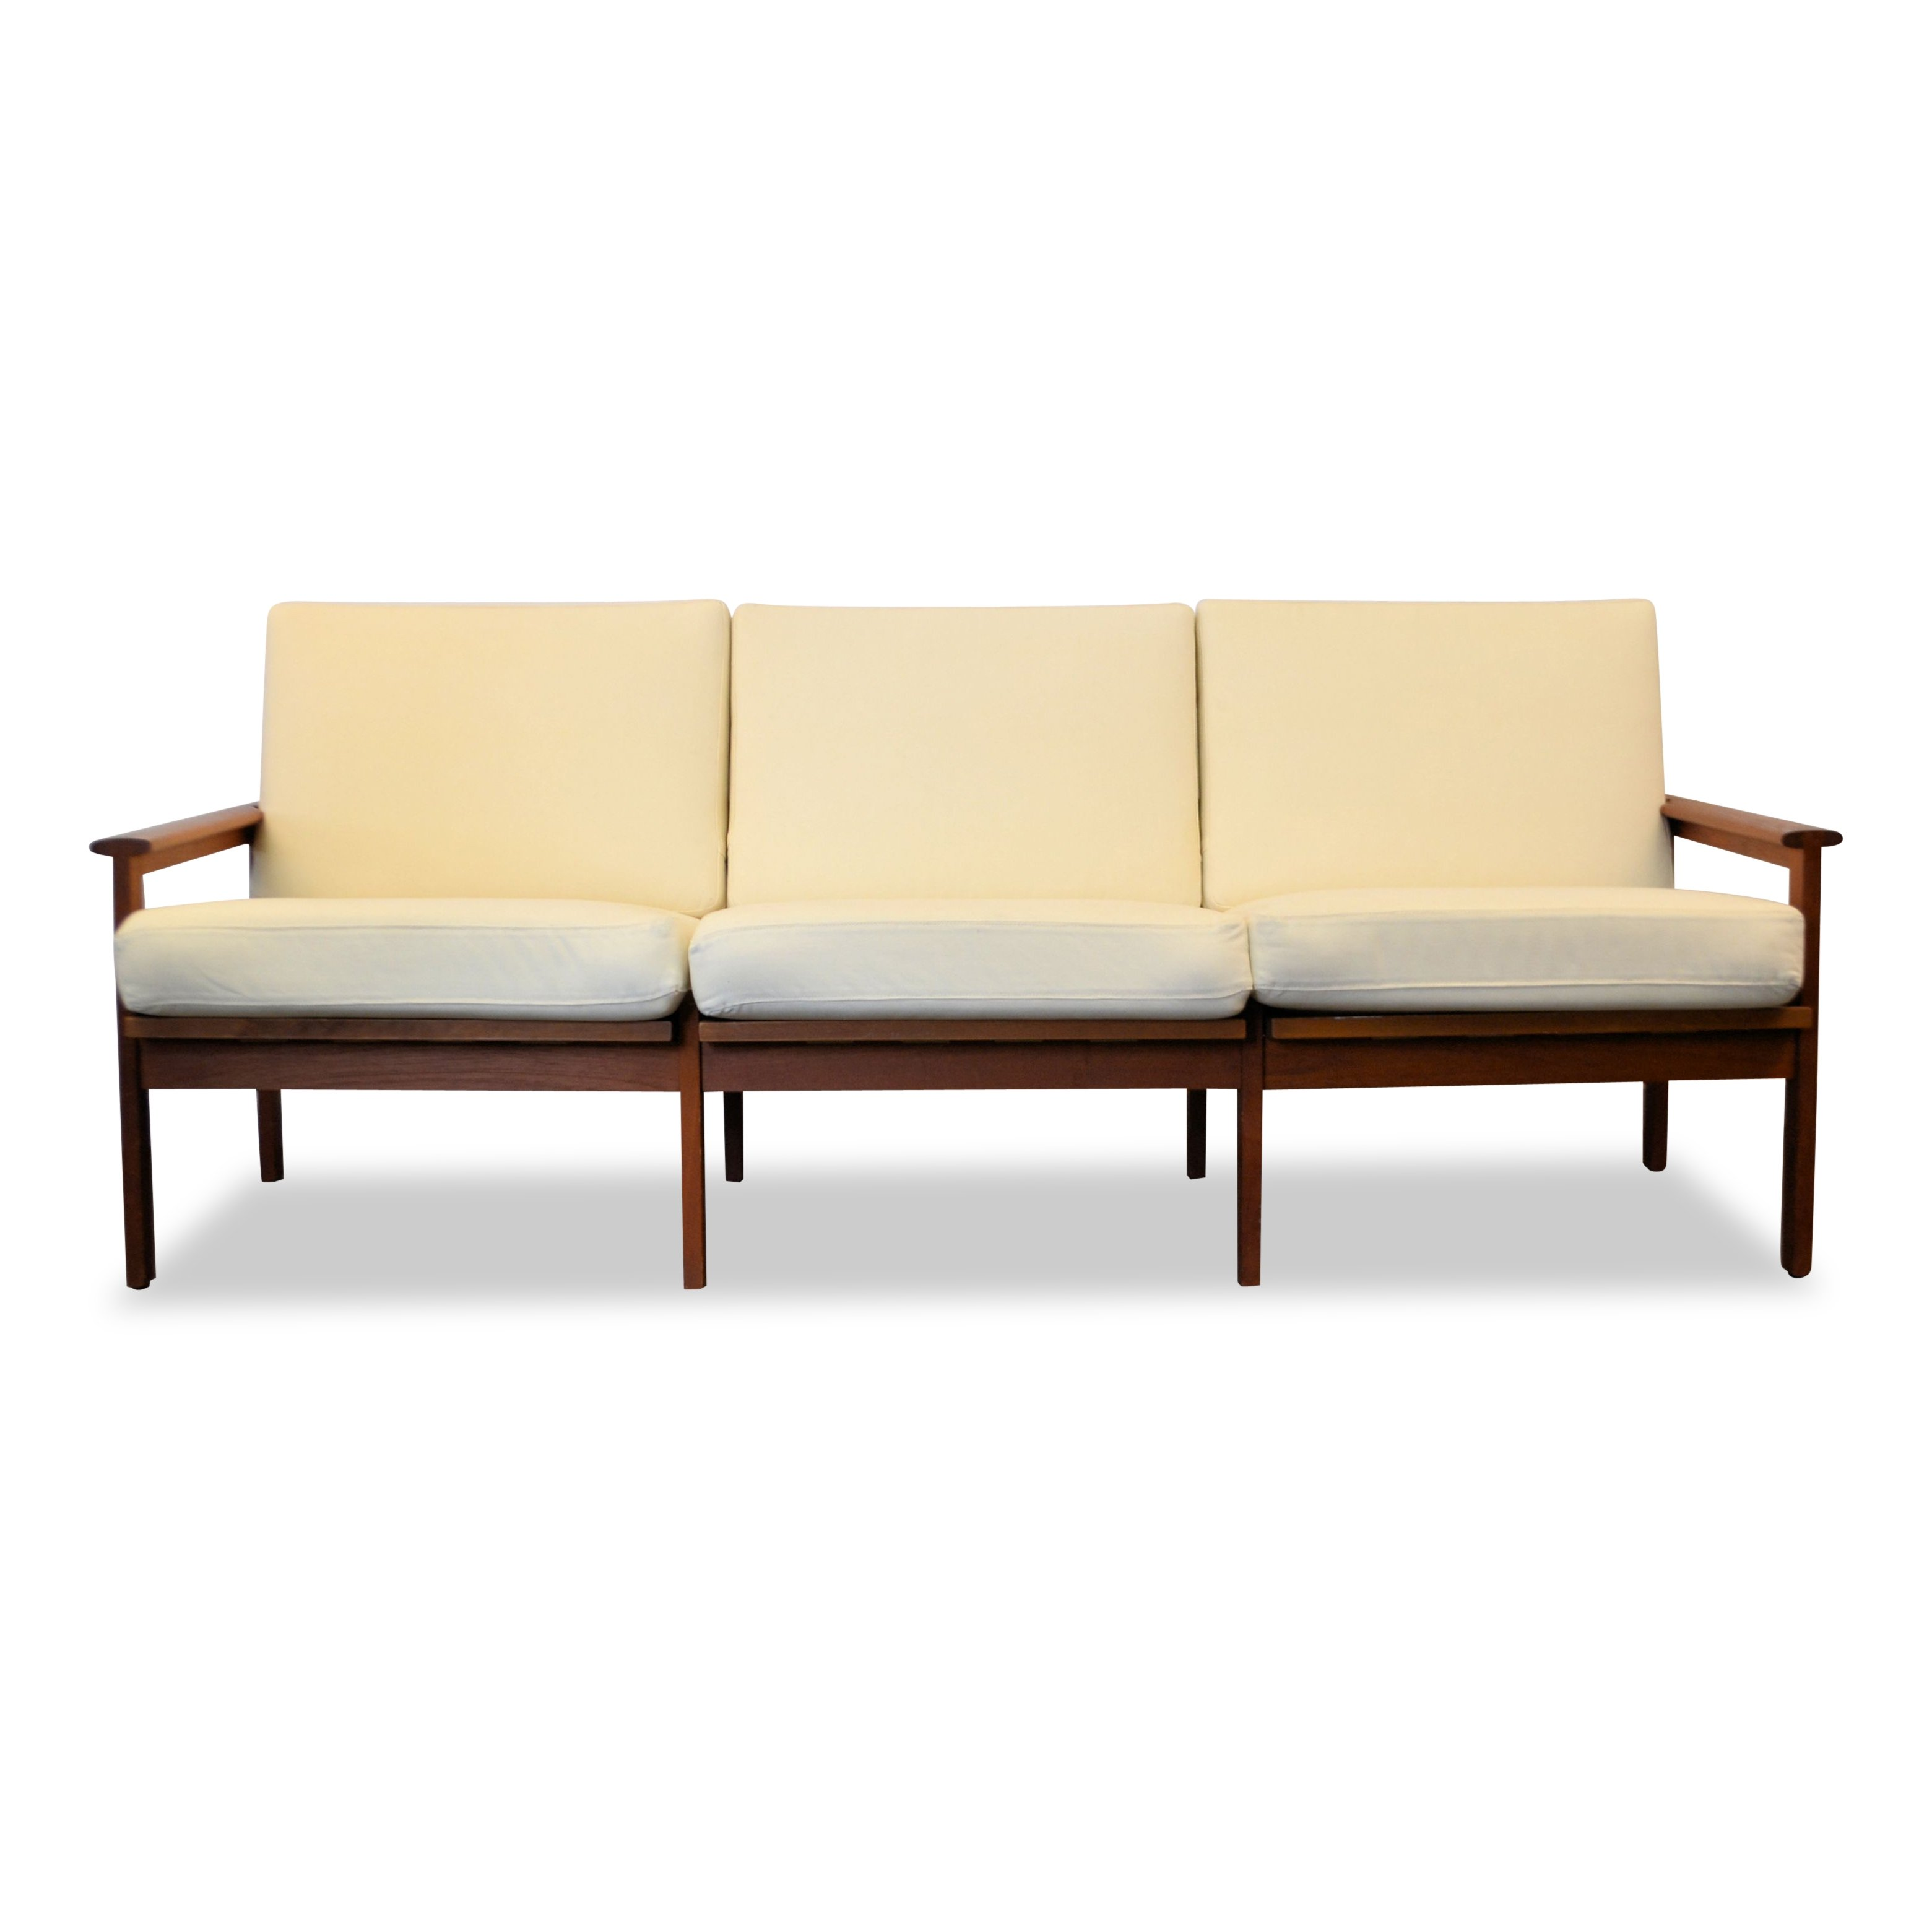 vintage danish design illum wikkelso 39 capella 39 3 seating teak sofa 78557. Black Bedroom Furniture Sets. Home Design Ideas